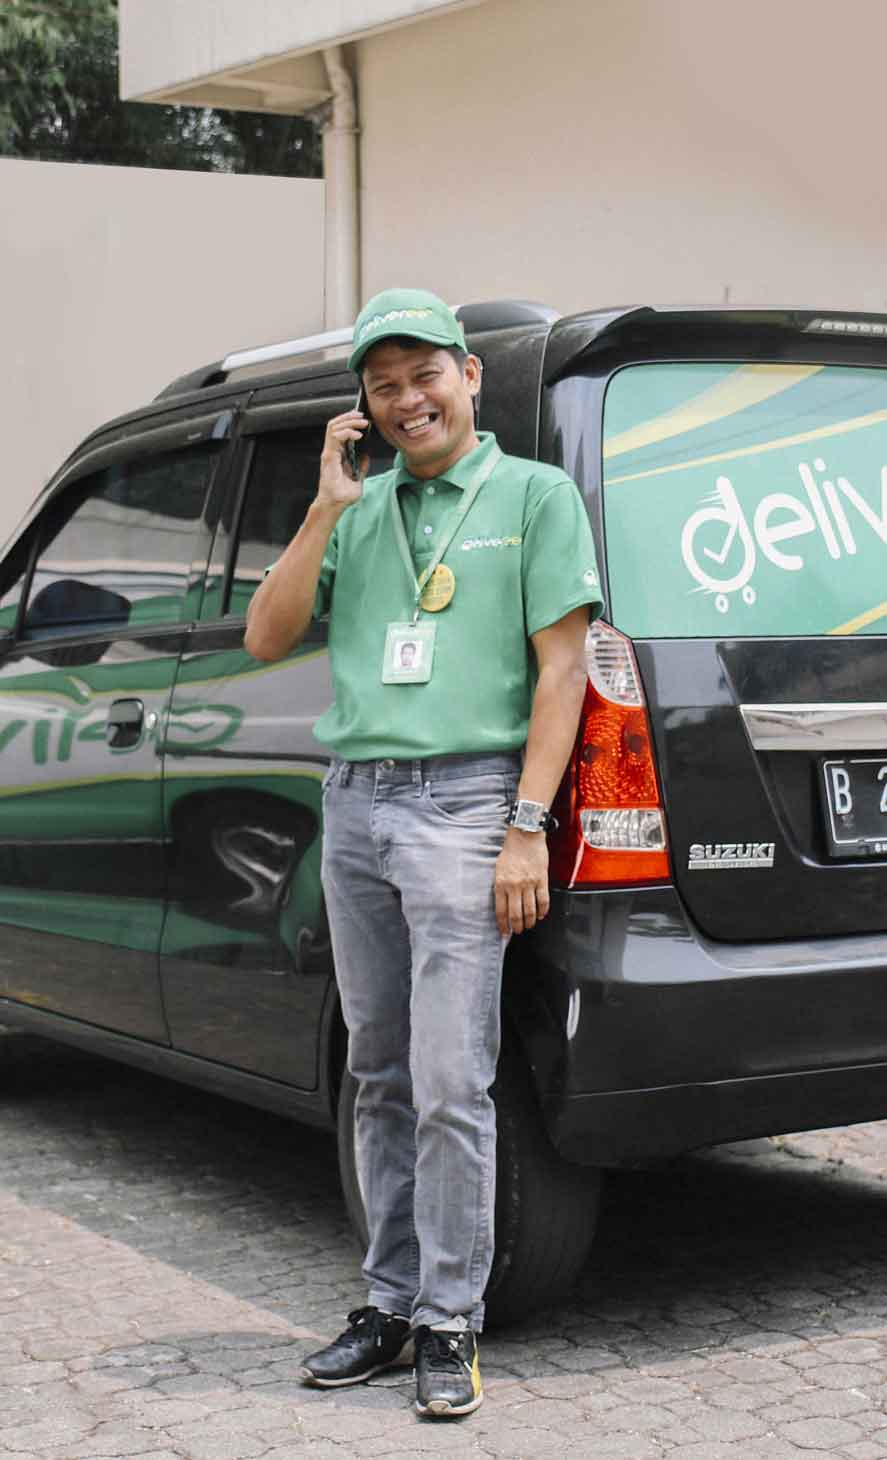 Deliveree Driver Eco Car Image